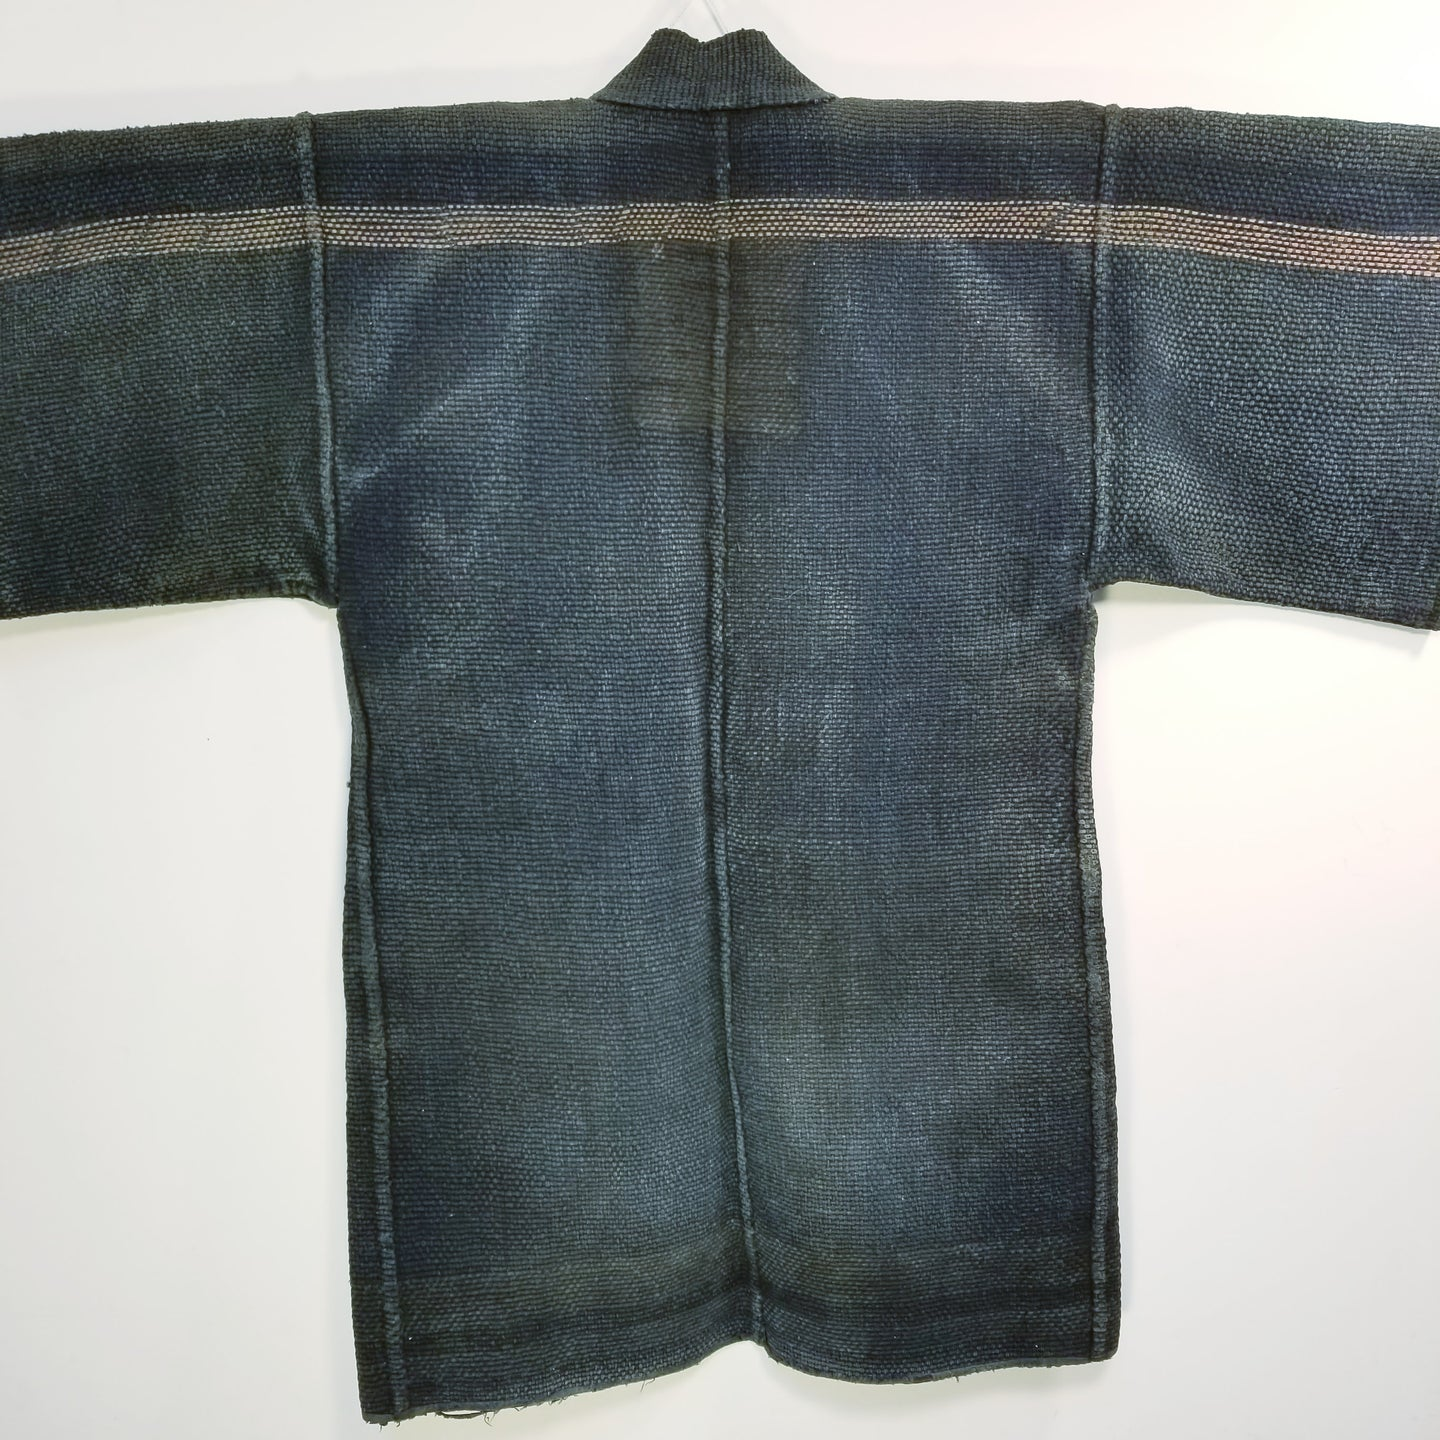 Showa Faded Sashiko Fireman's Jacket